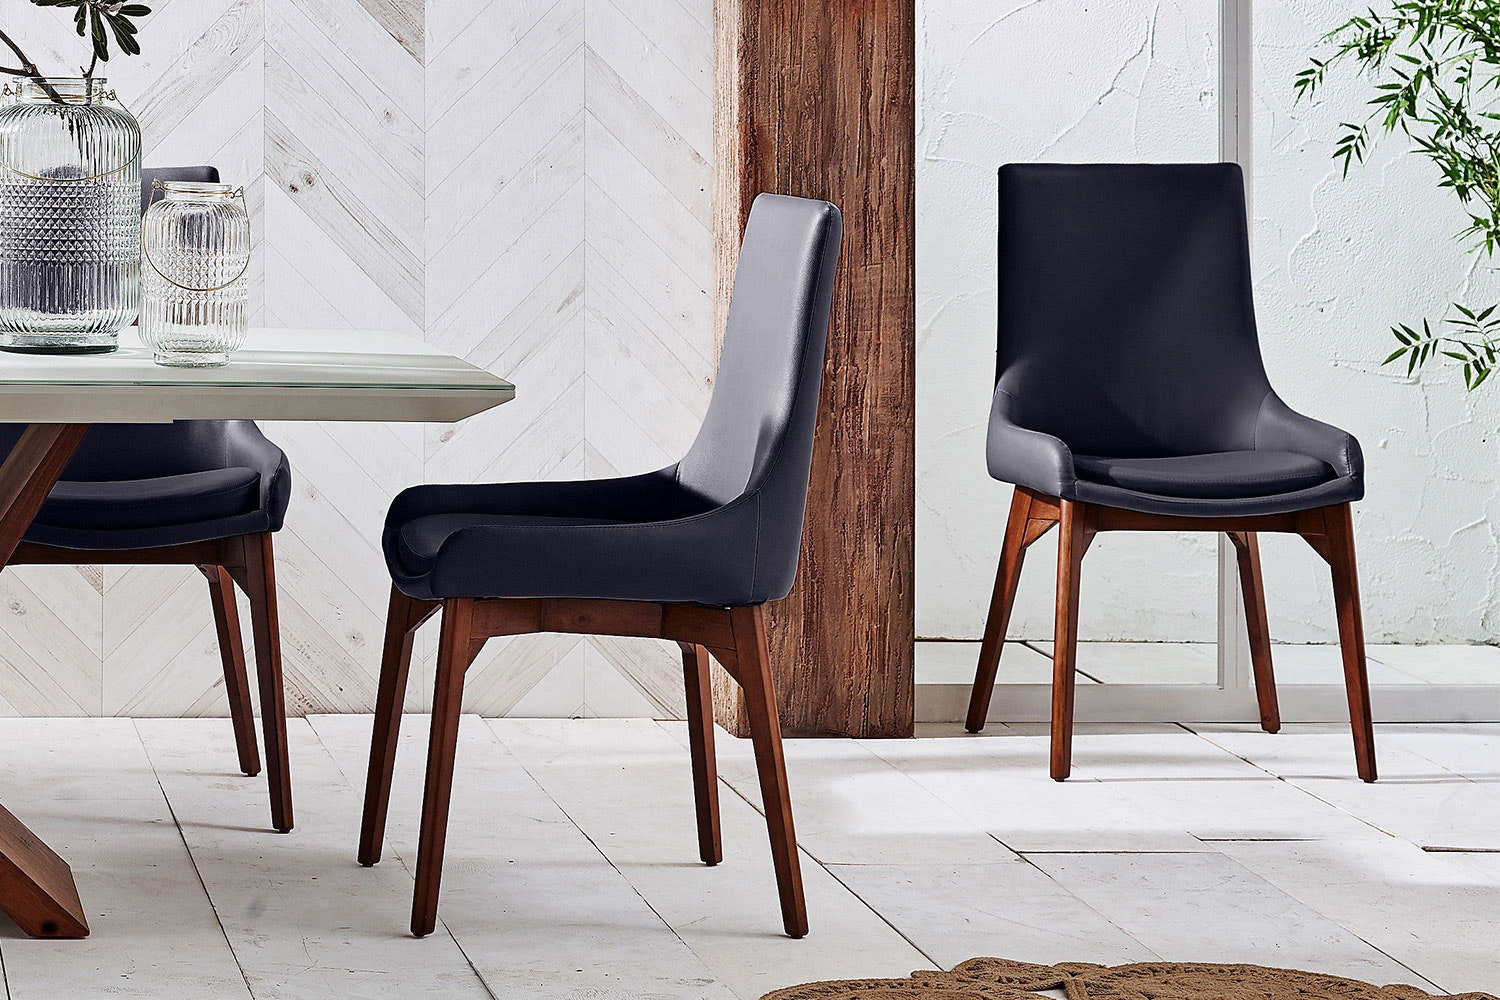 Moderna Dining Chair by Insato Furniture